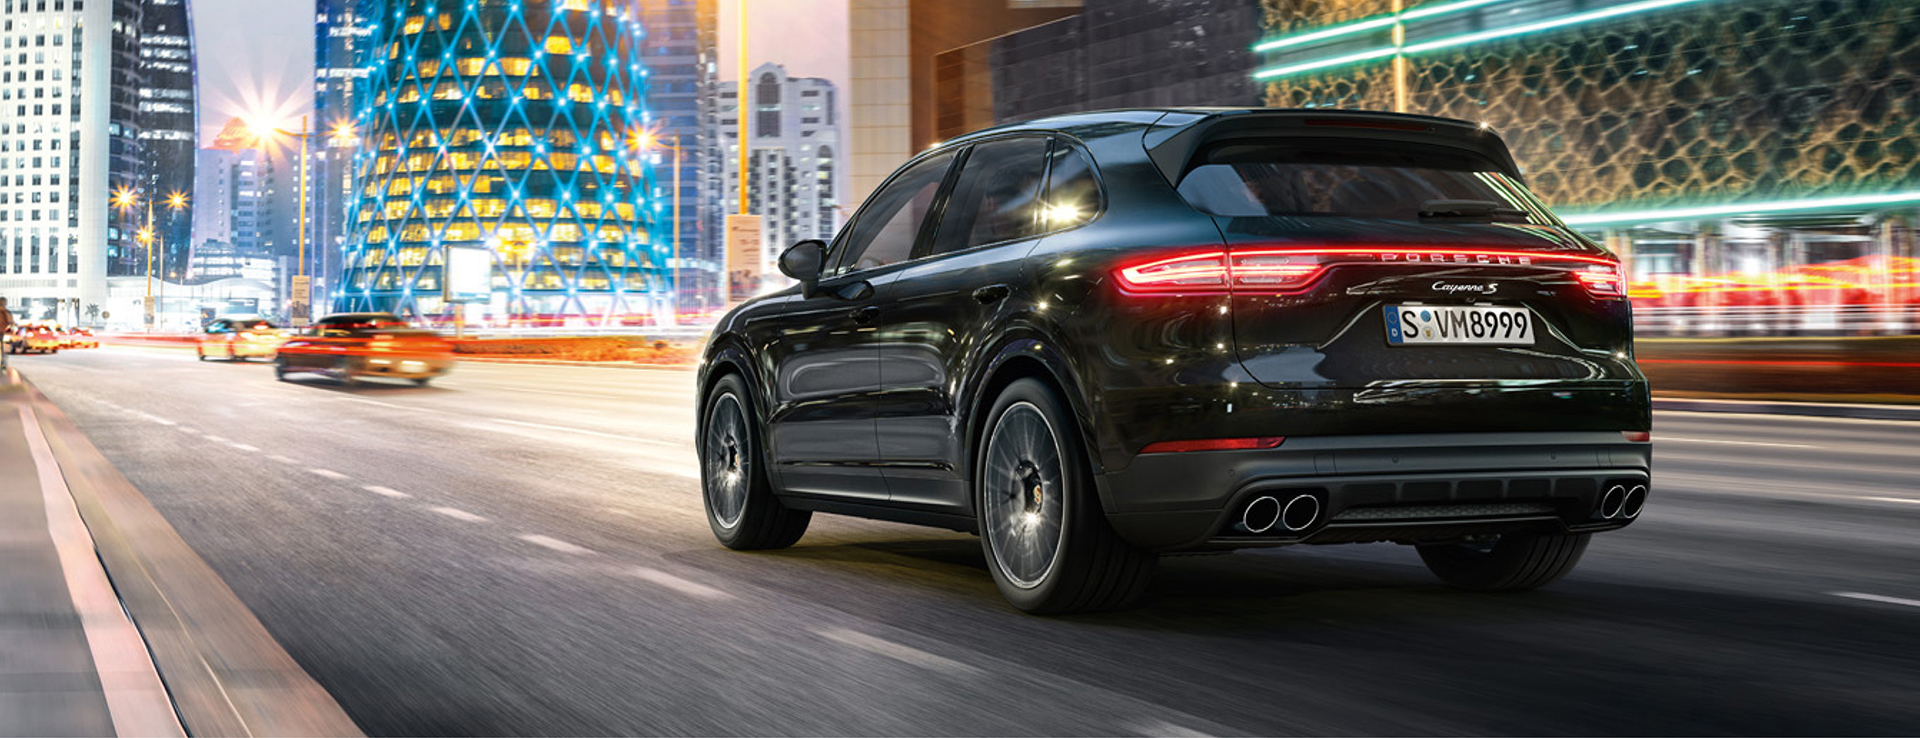 The new Cayenne is here